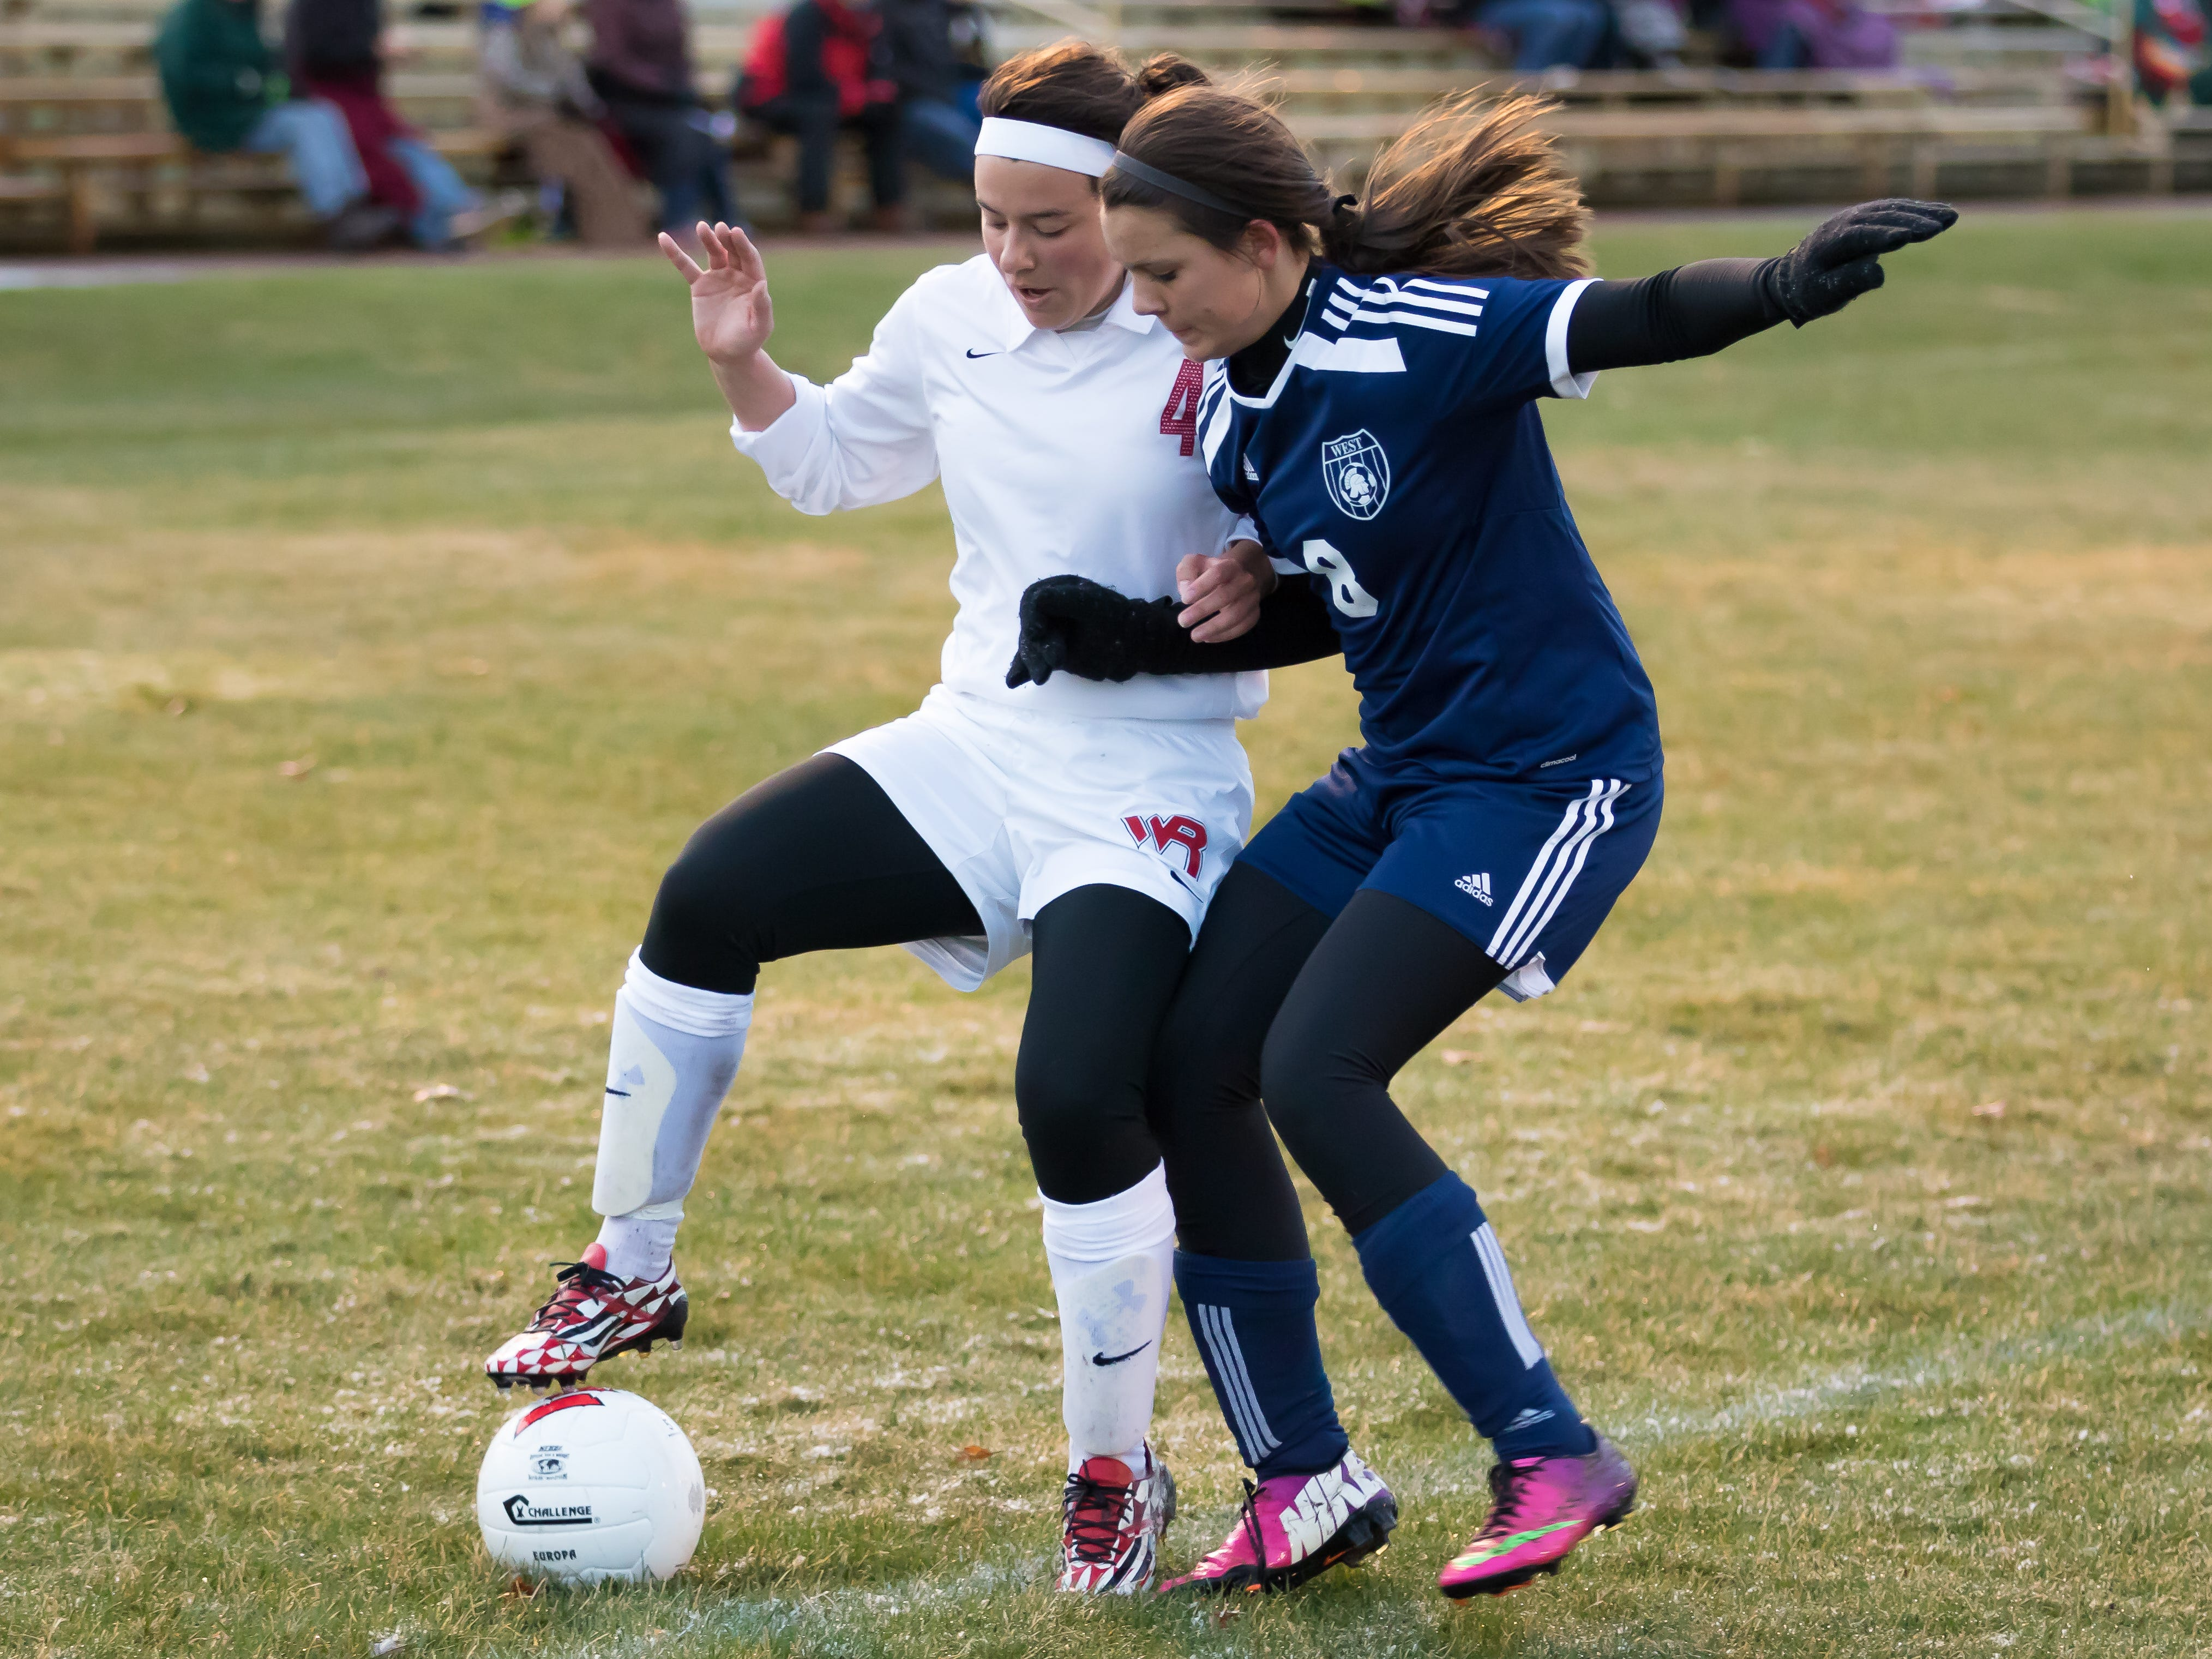 Wisconsin Rapids junior Katie Kiiskila and Wausau West freshman Sydney Draeger battle for the ball during a Wisconsin Valley Conference game Tuesday at Washington Field.